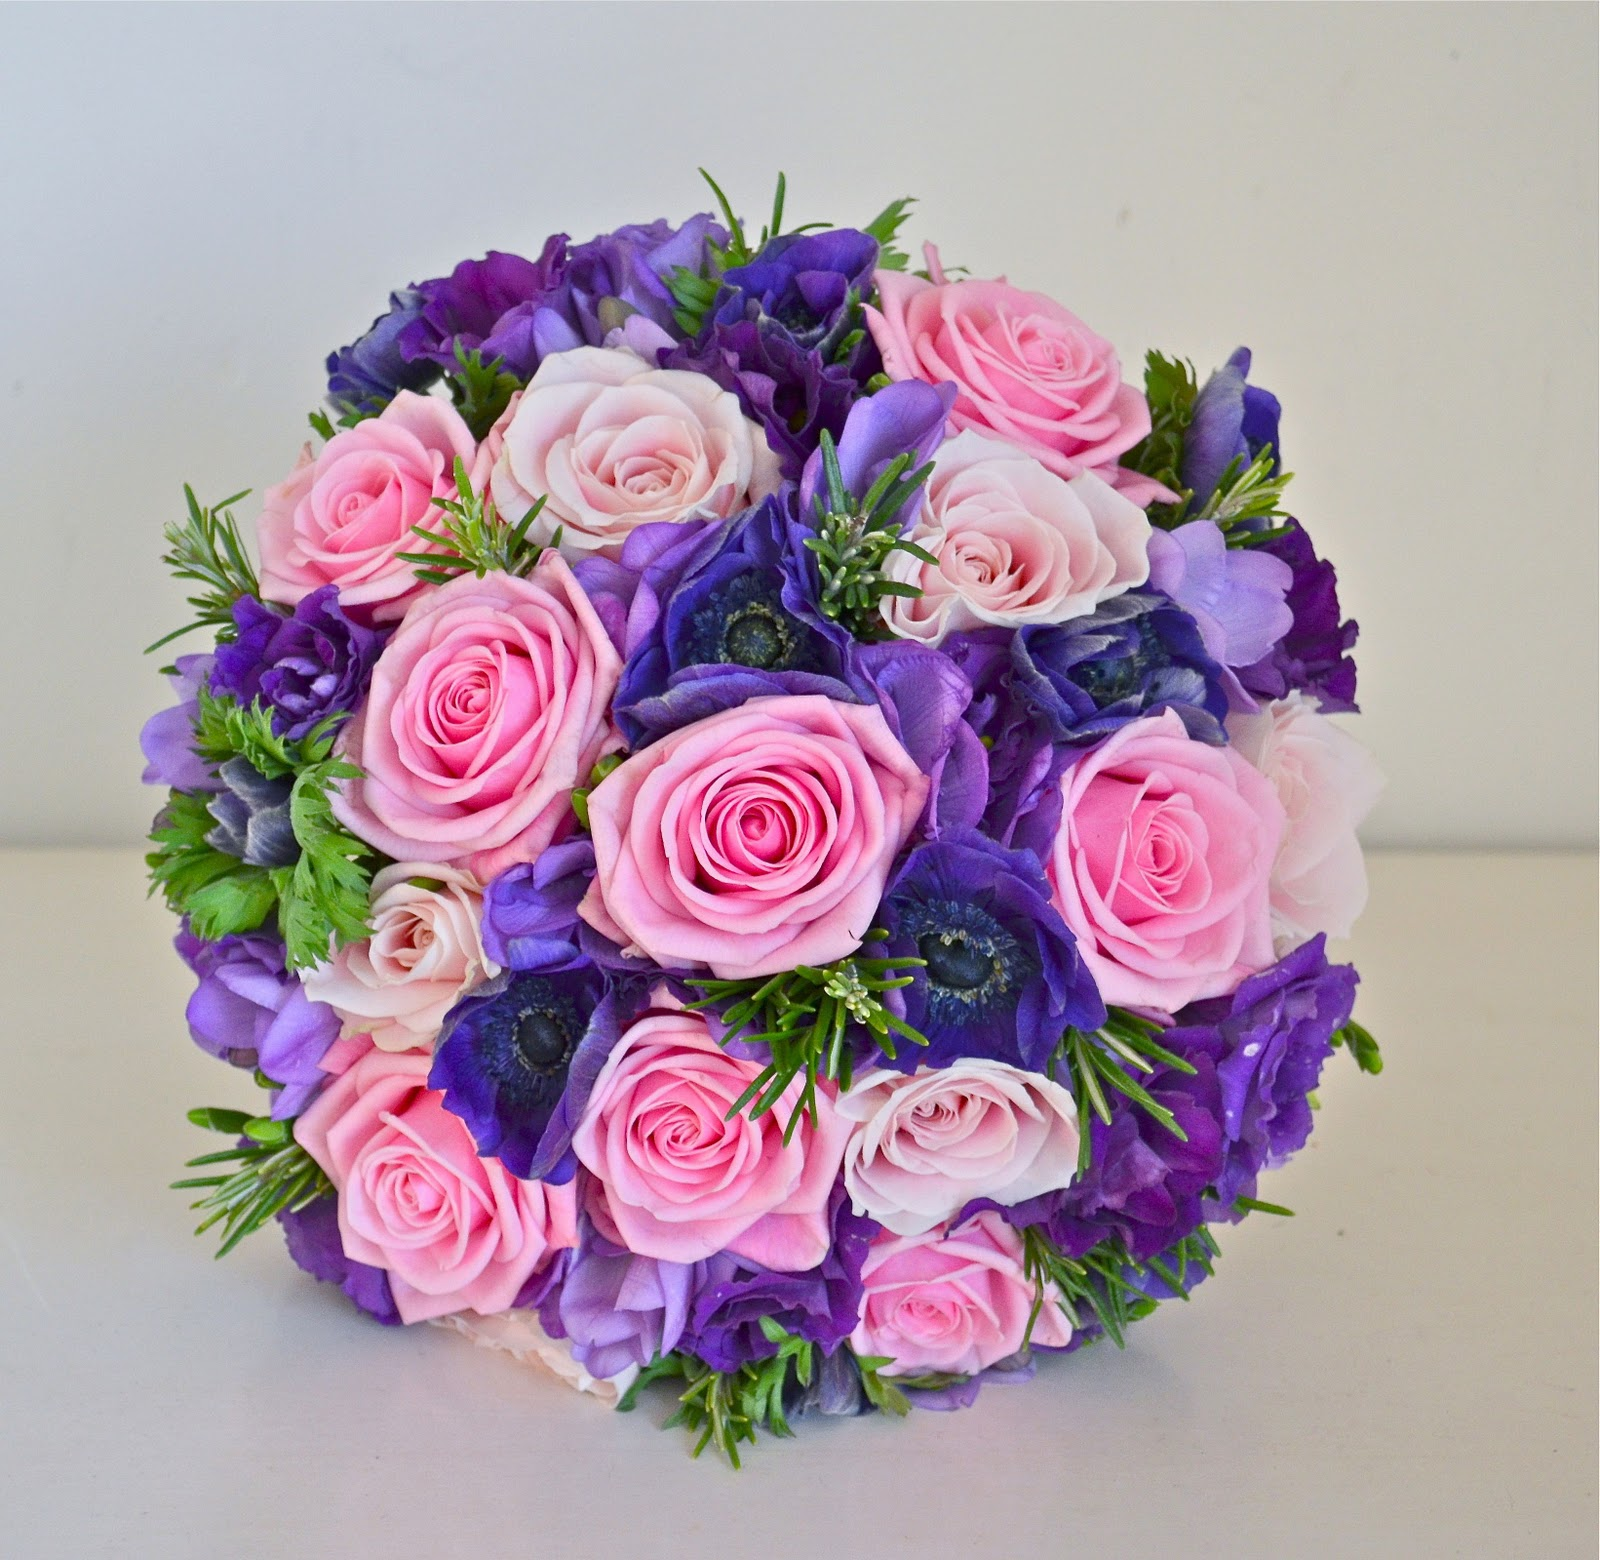 Pink Wedding Flowers: Wedding Flowers Blog: Jonquil's Pink And Purple Wedding